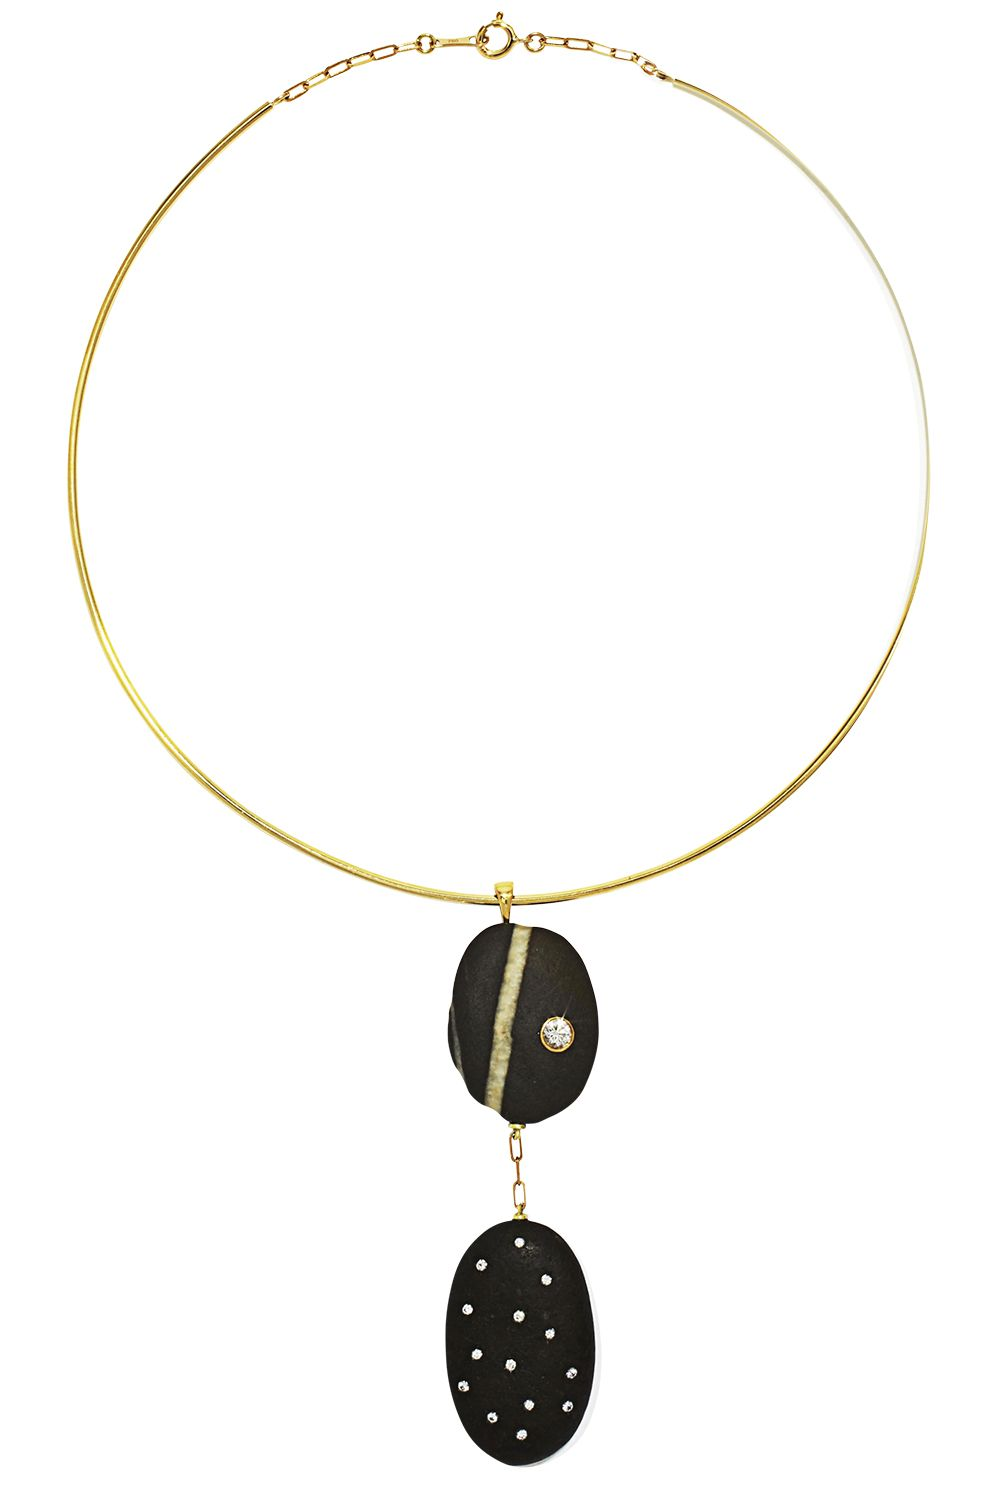 """<p><strong data-redactor-tag=""""strong"""">CVC Stones</strong>choker, $6,100,<a href=""""http://www.modaoperandi.com/"""" target=""""_blank"""">modaoperandi.com</a>.<span class=""""redactor-invisible-space"""" data-verified=""""redactor"""" data-redactor-tag=""""span"""" data-redactor-class=""""redactor-invisible-space""""></span></p>"""